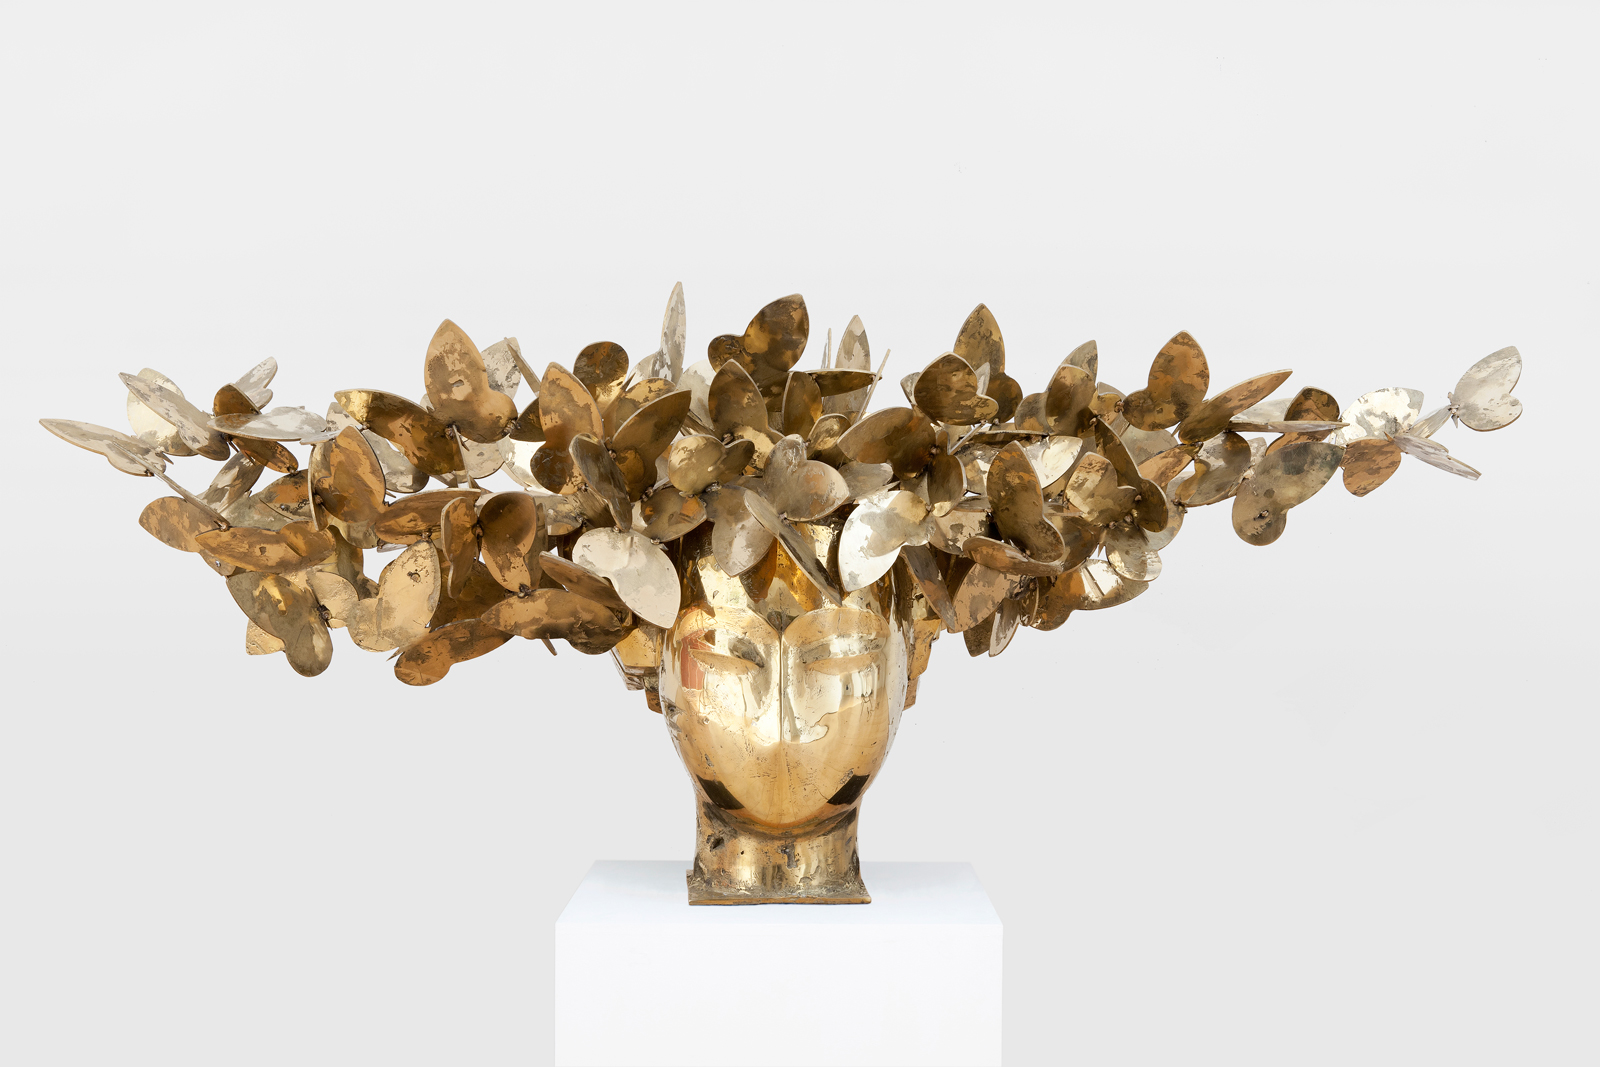 Manolo Valdes, Mariposas dorados IV, 2011. 99.06 x 243.84 x 91.44 cm. Brass. Download